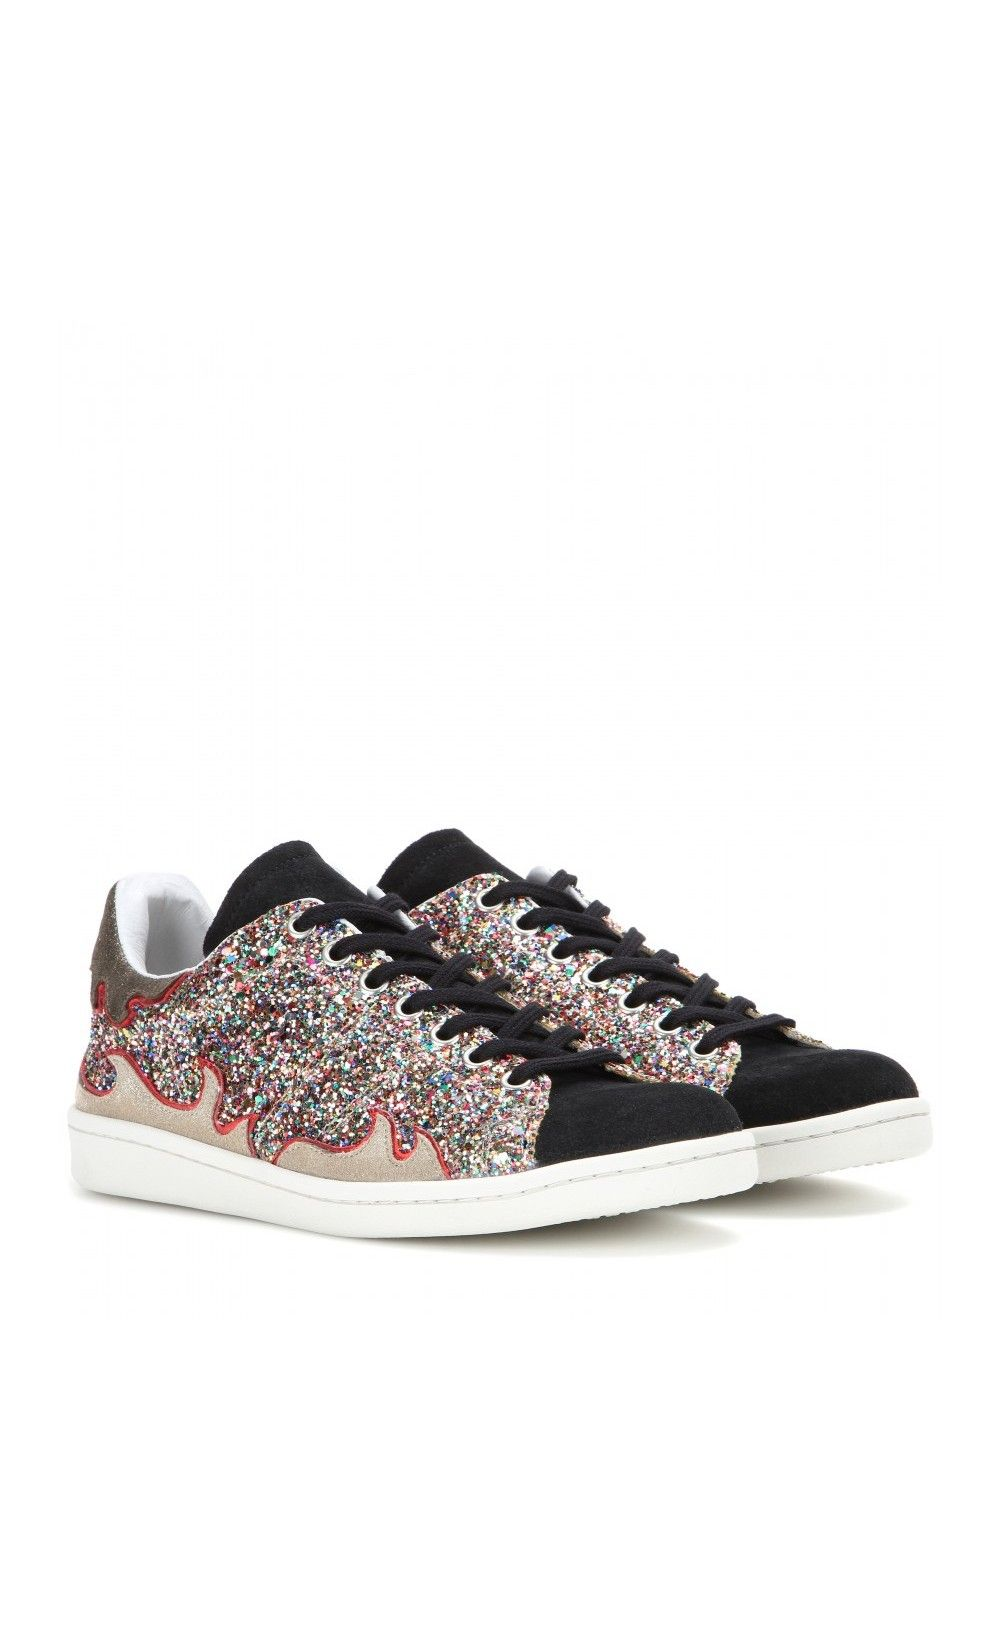 674e7d818249 Isabel Marant Gilly Glitter Sneakers - Isabel Marant